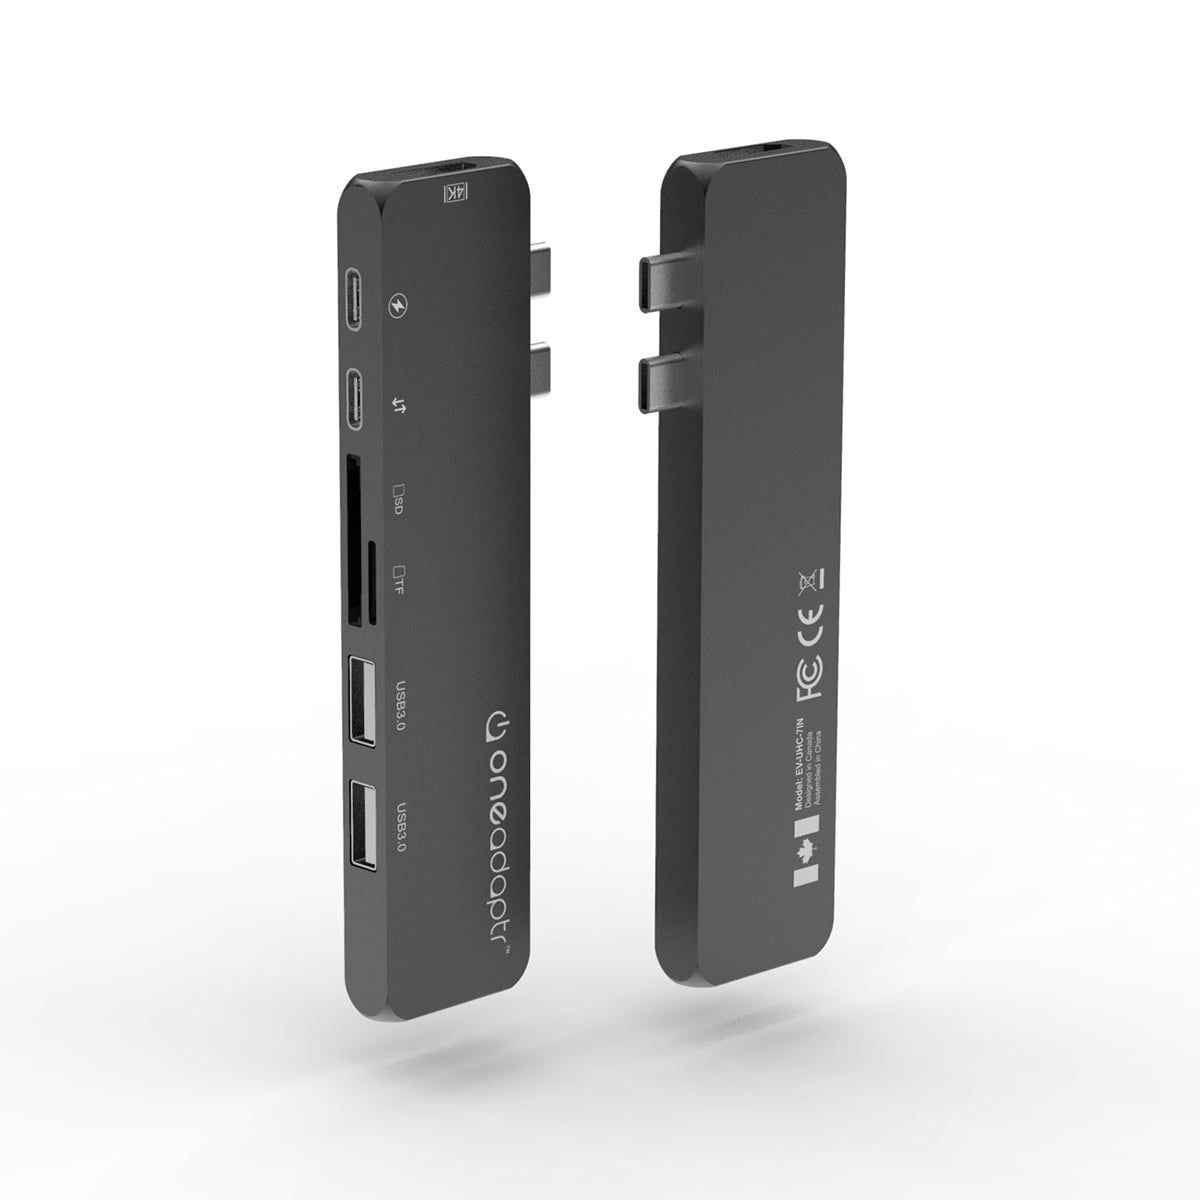 The Evri MAX and FLEX USB C hub with 4k HDMI travel product recommended by Michael Ma on Lifney.